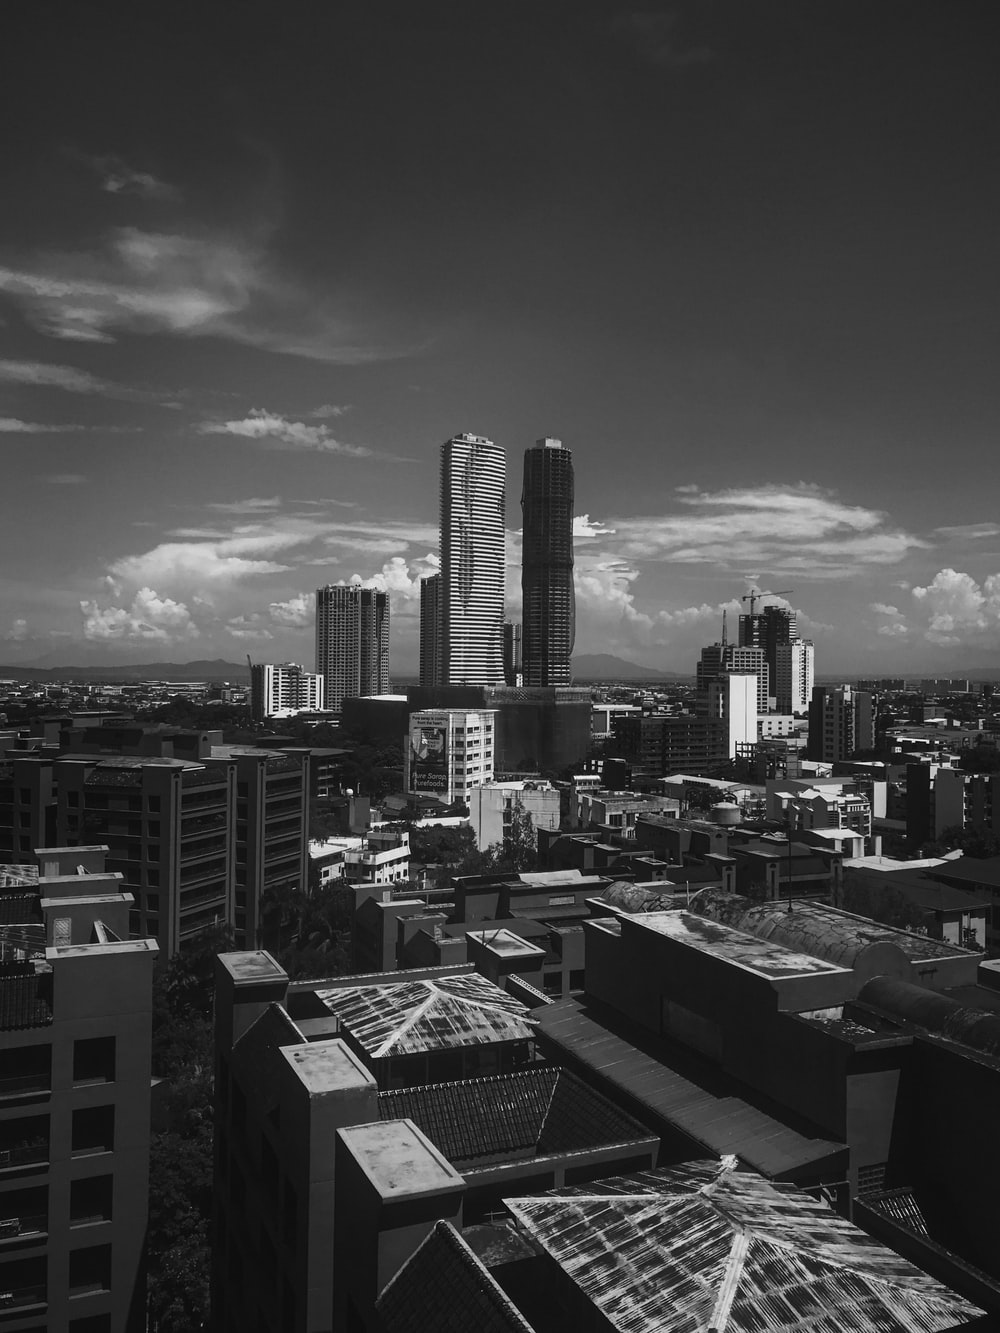 grayscale photography of city during daytime